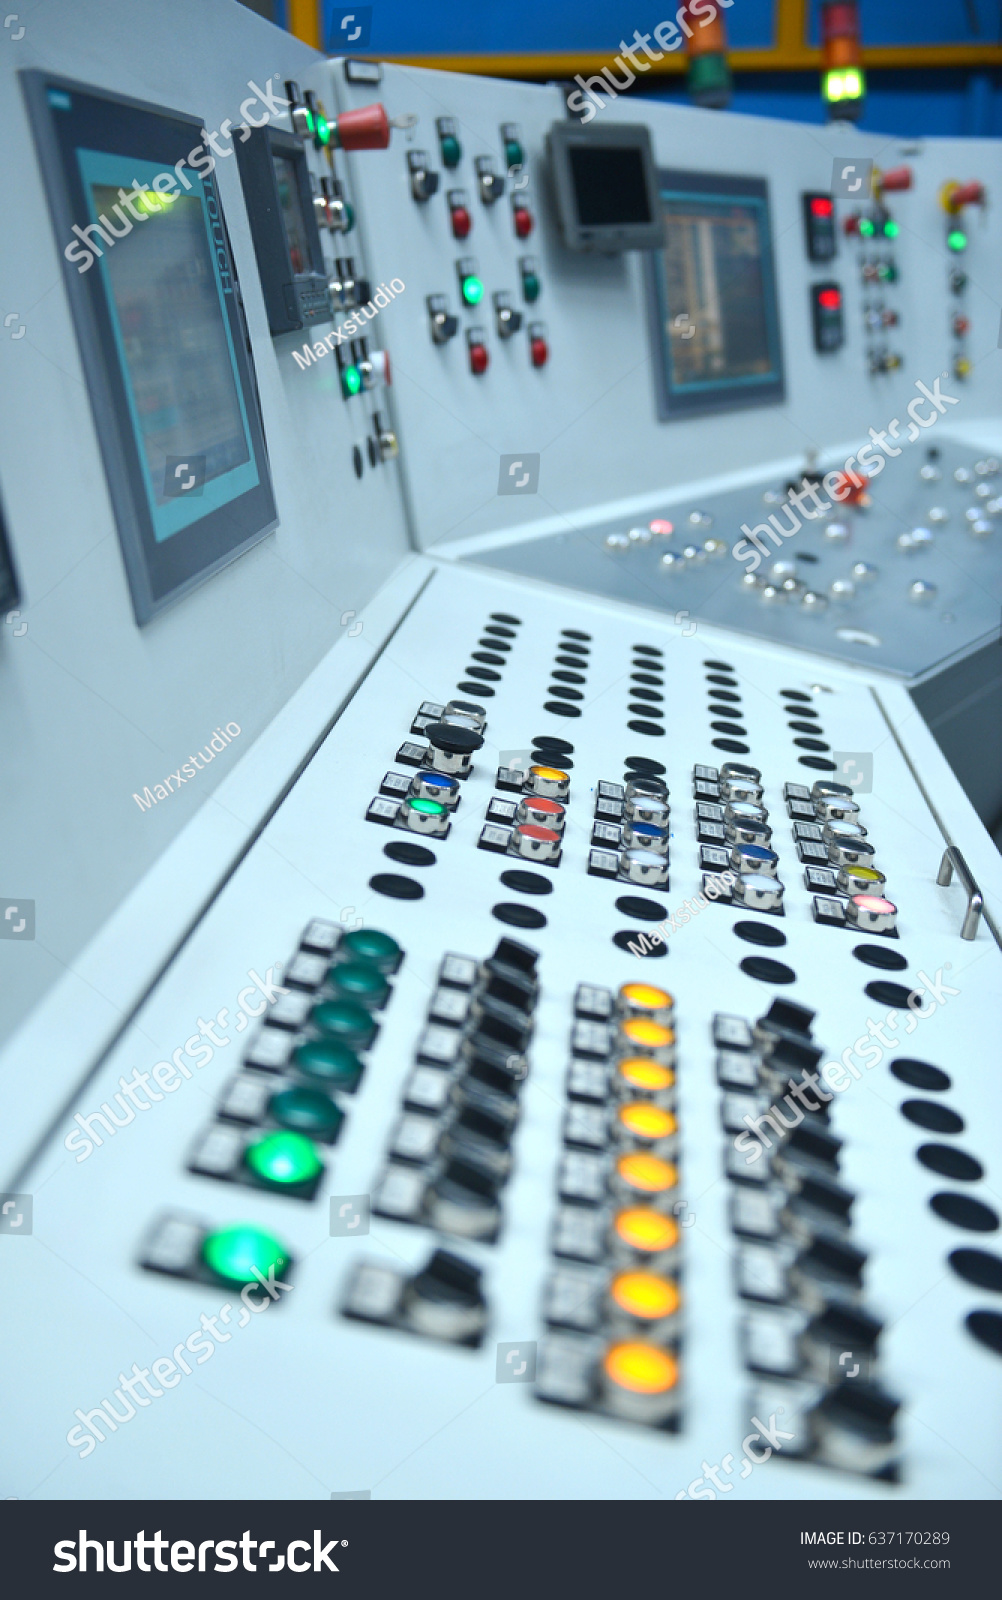 Electrical Control Panel Buttons Levers Stock Photo & Image (Royalty ...